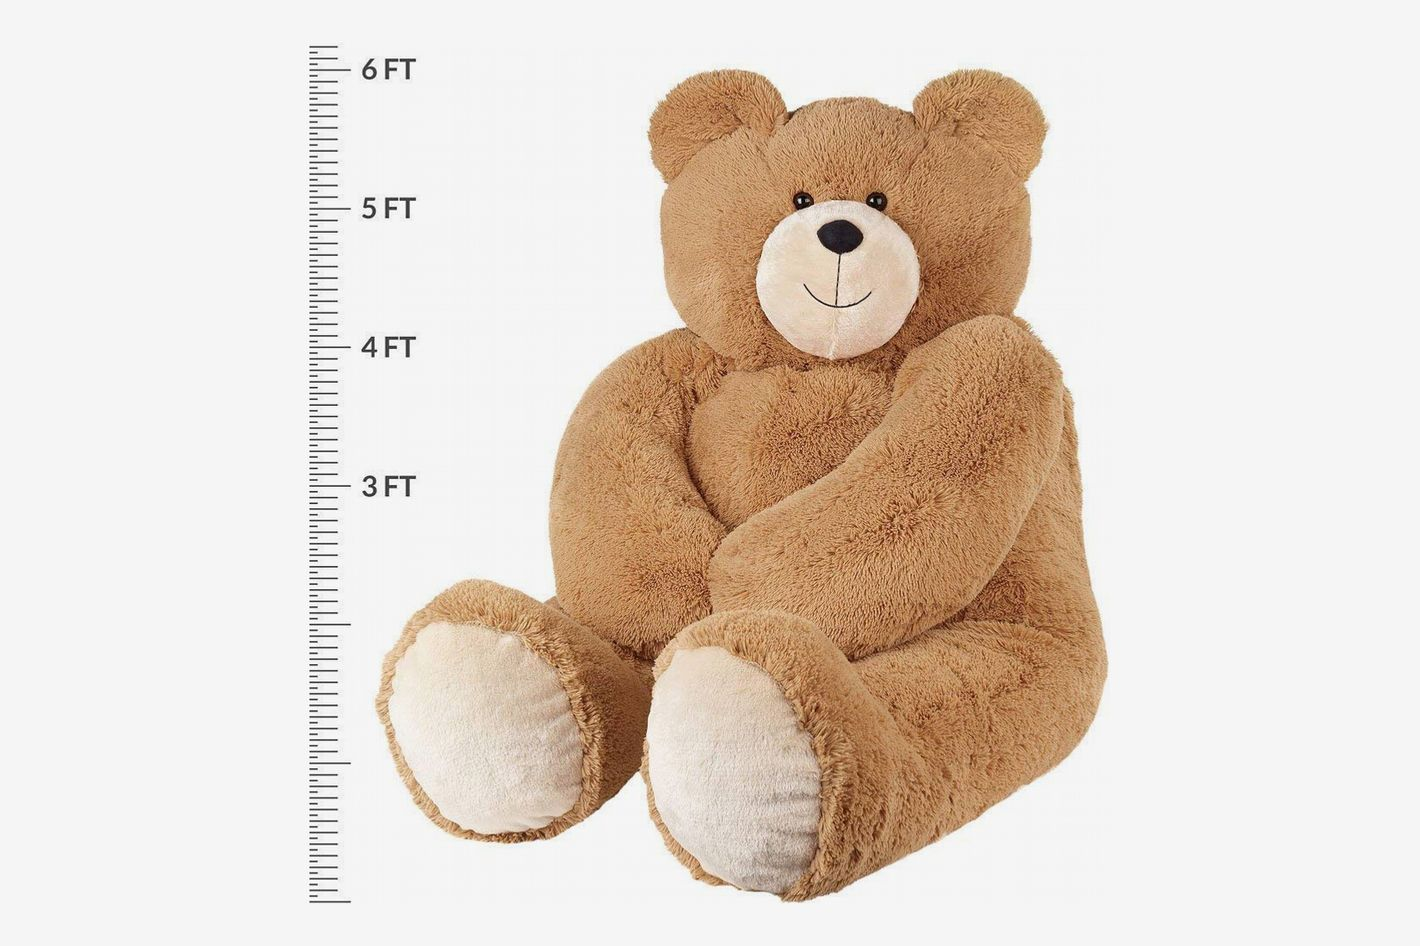 Vermont Teddy Bear - Giant Teddy Bear, 6 Feet Tall, Brown